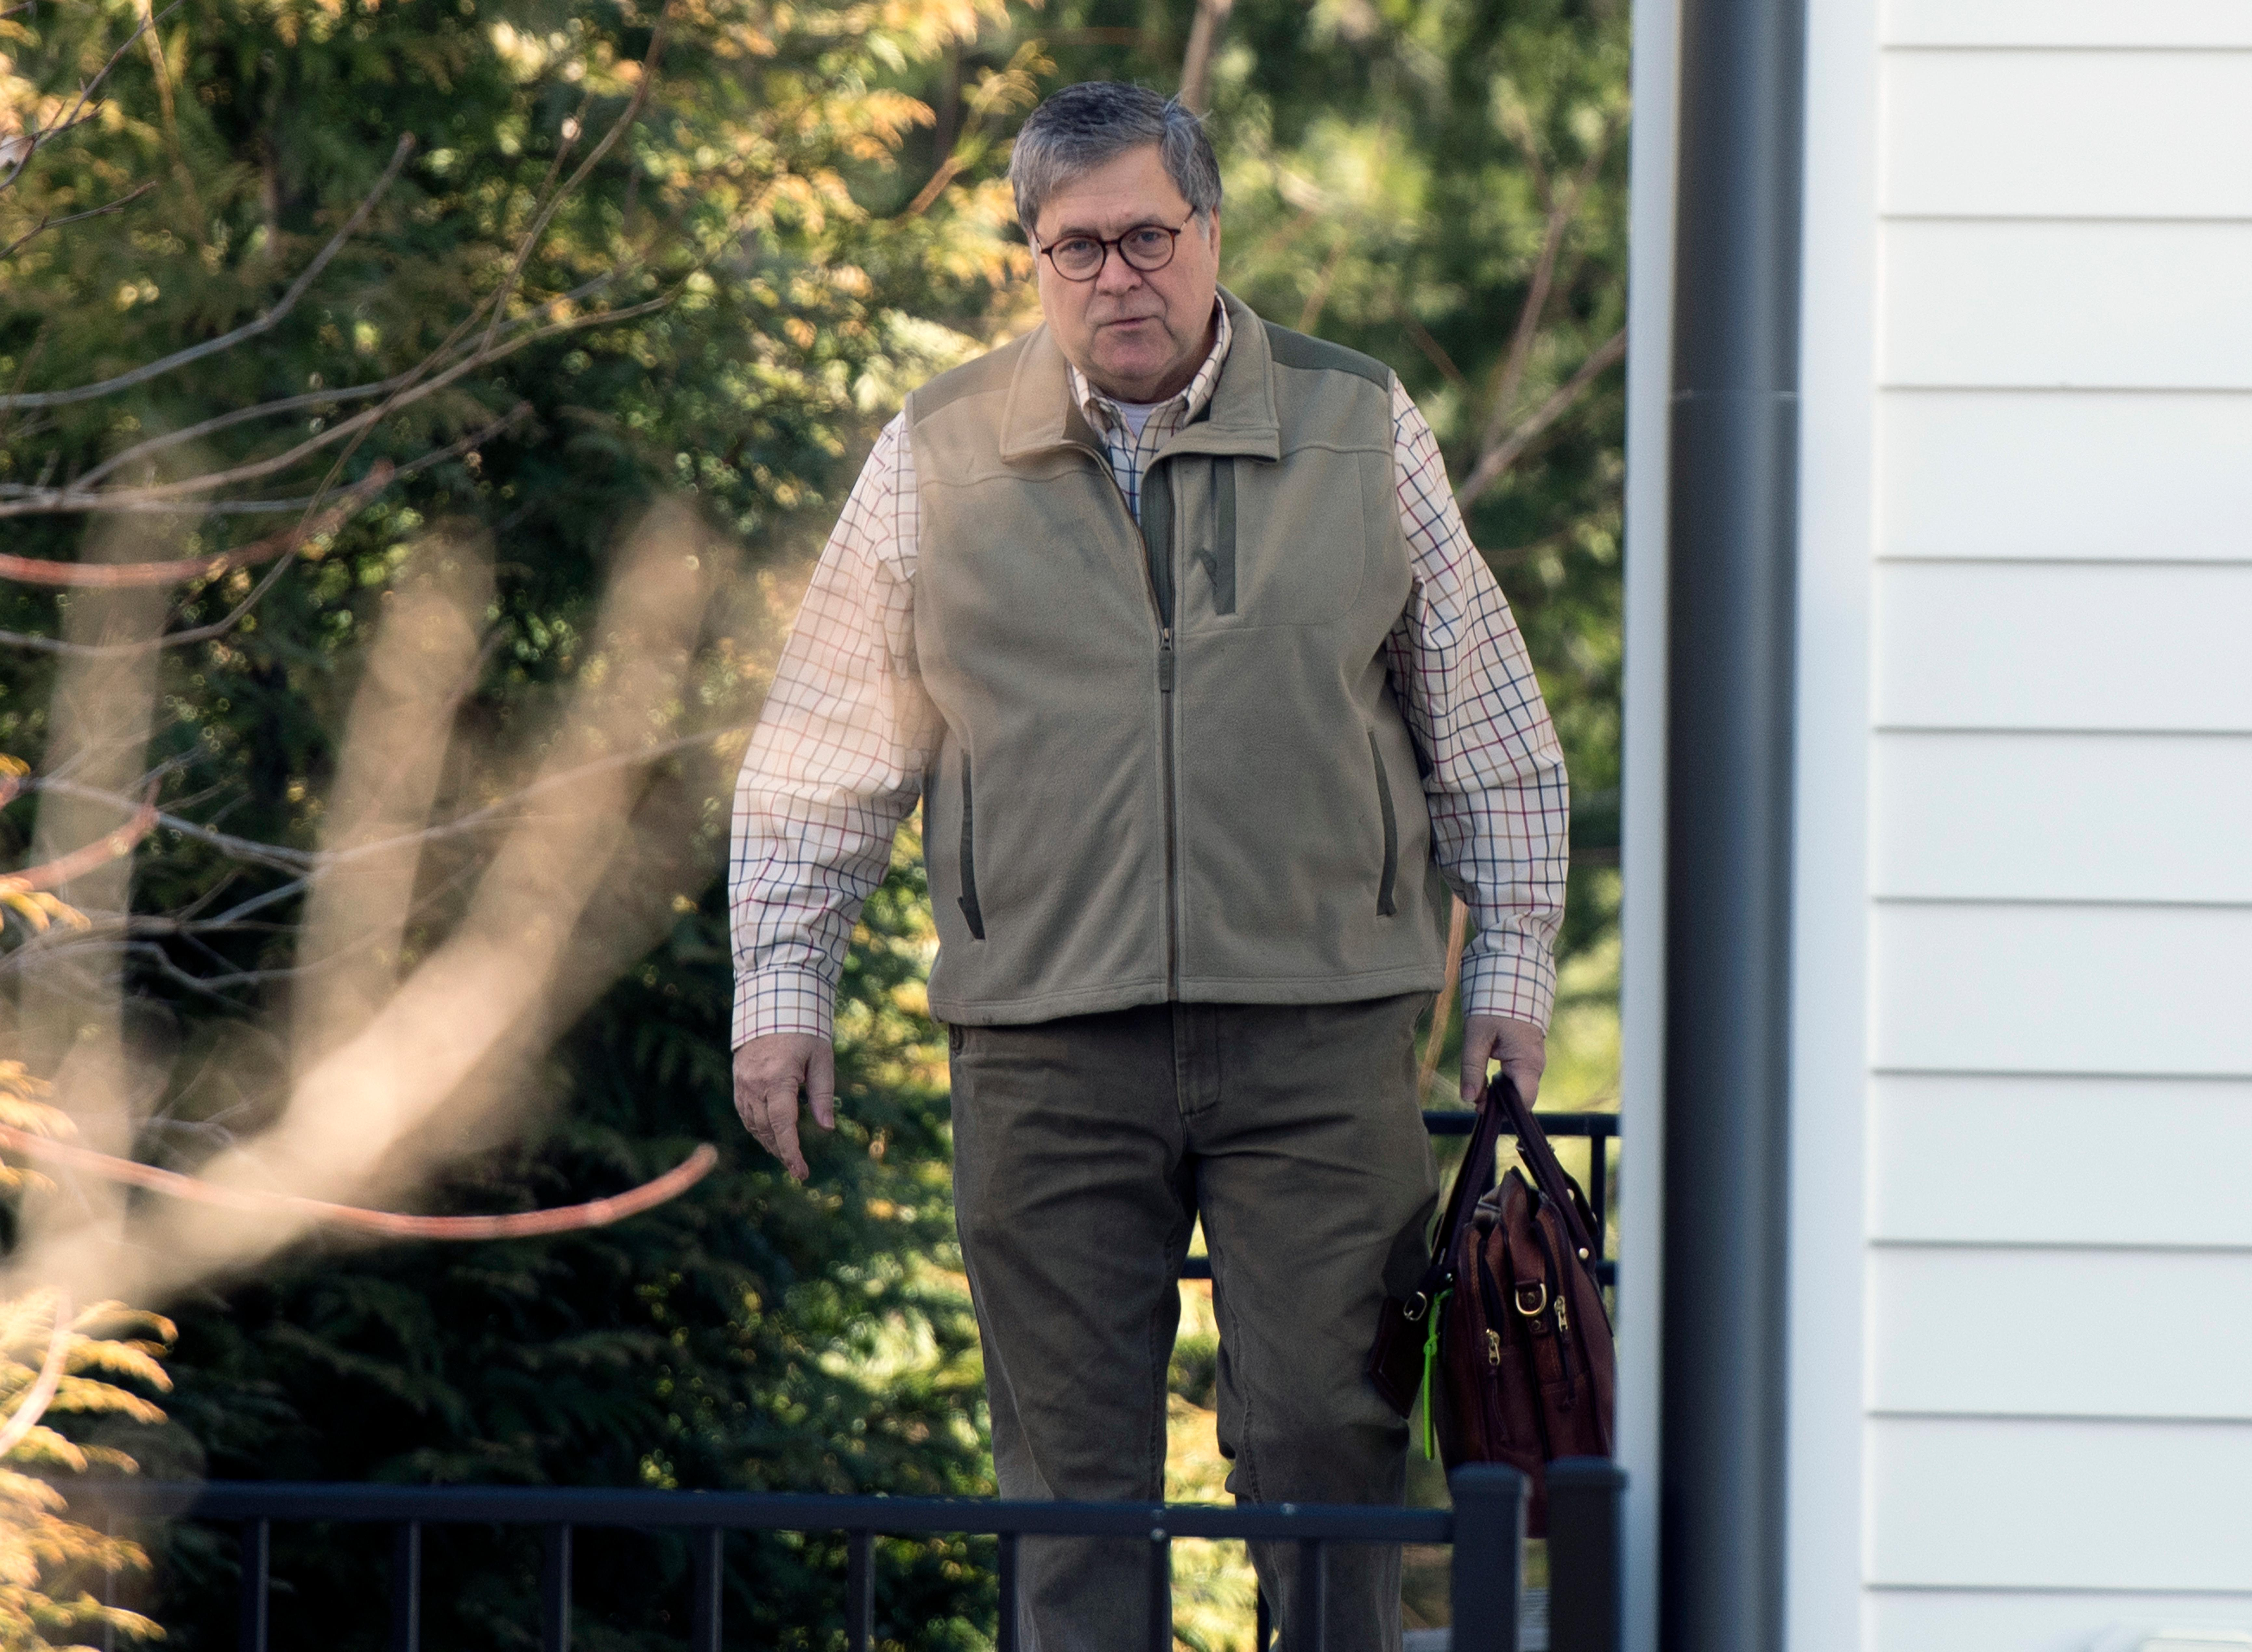 Attorney General William Barr leaves his home in McLean, Va., on Sunday morning, March 24, 2019. Barr is preparing a summary of the findings of the special counsel investigating Russian election interference.  The release of Barr's summary of the report's main conclusions is expected sometime Sunday. (AP Photo/Sait Serkan Gurbuz)